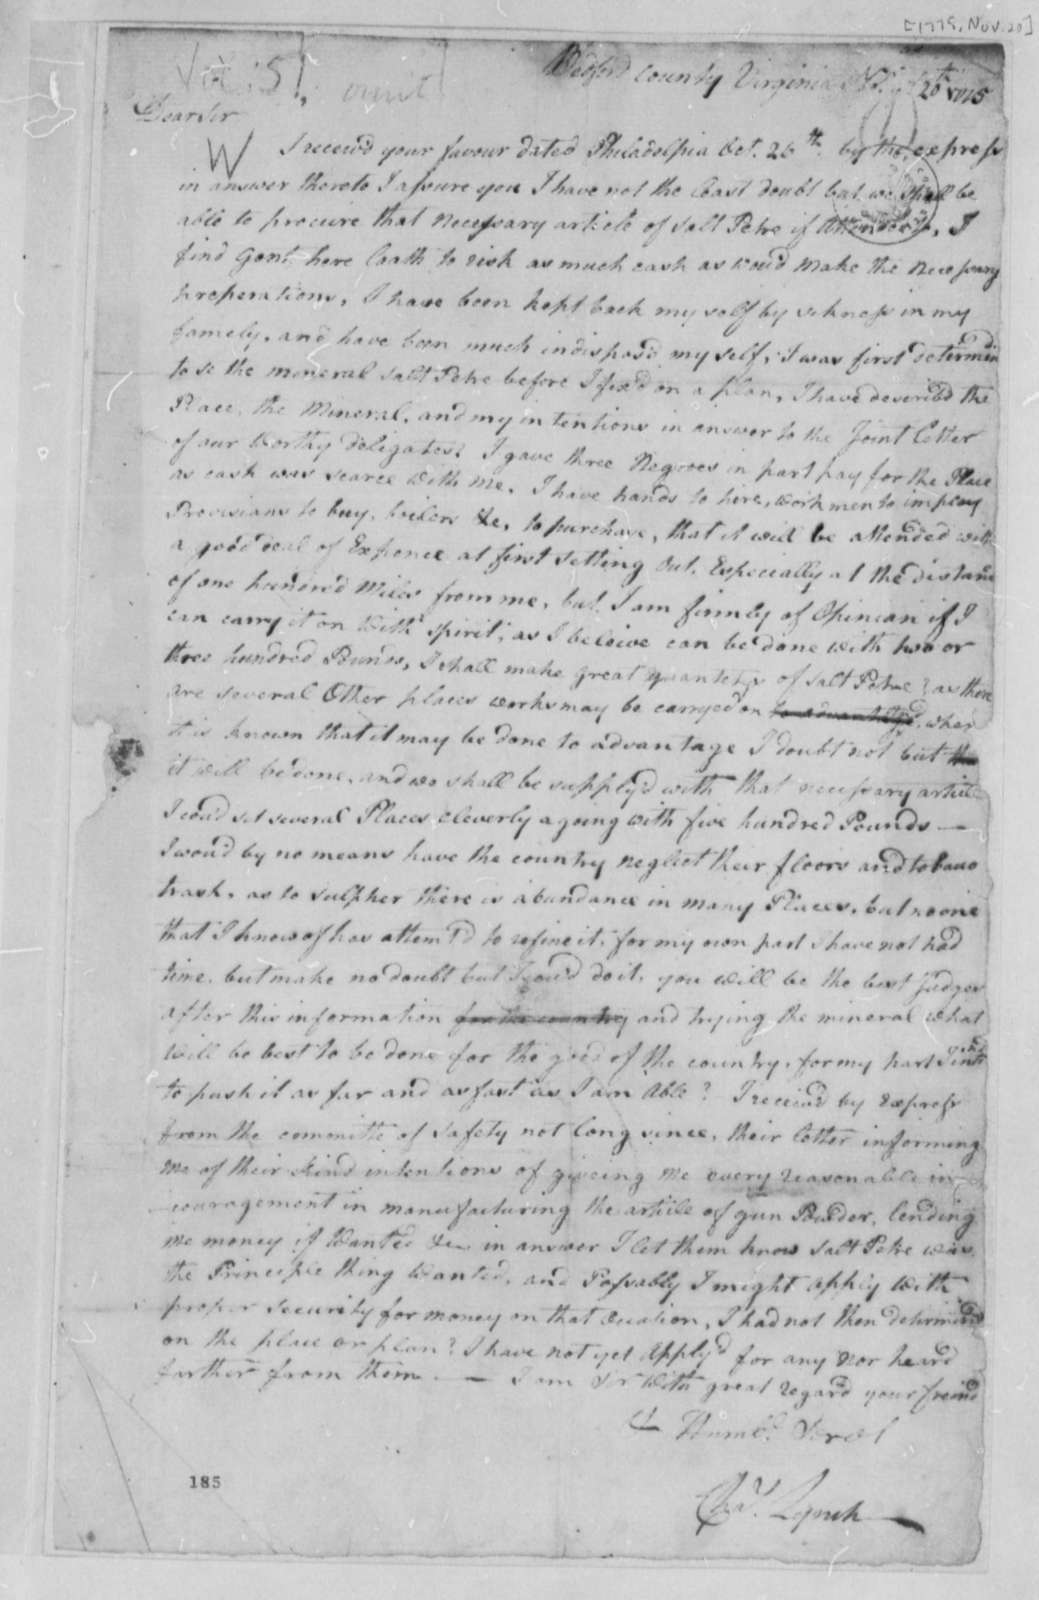 Charles Lynch to Thomas Jefferson, November 20, 1775, Saltpeter Deposits in Virginia